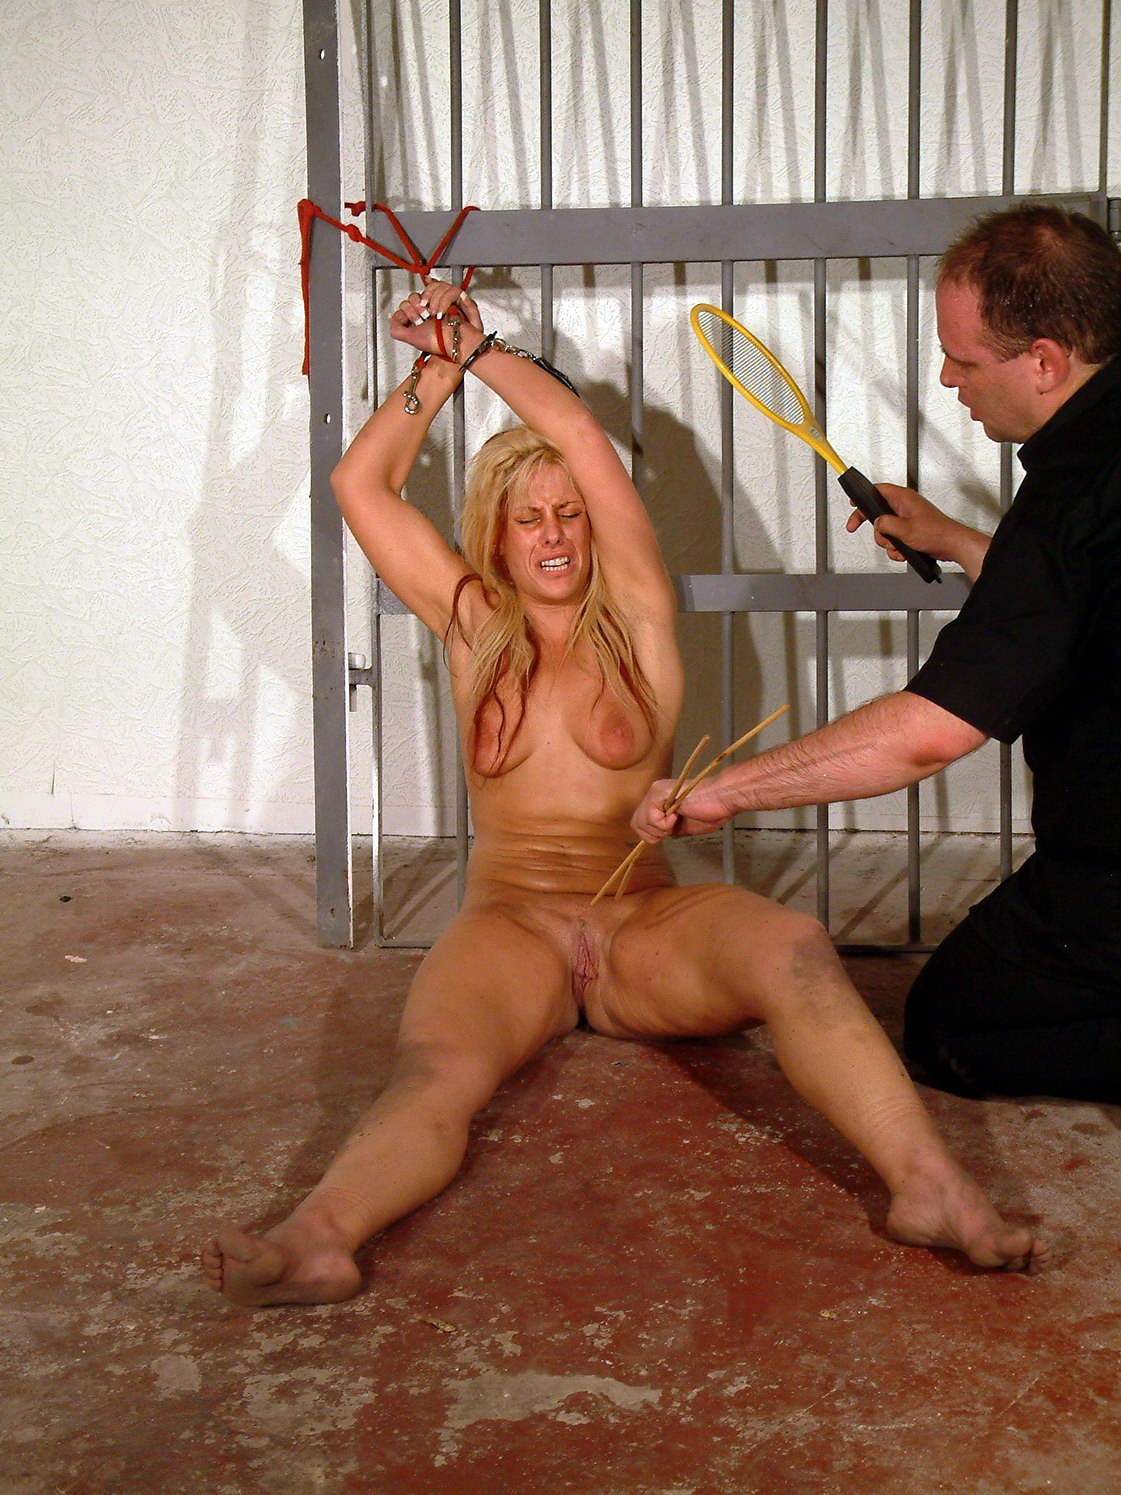 Erotic pictures of torture and sex